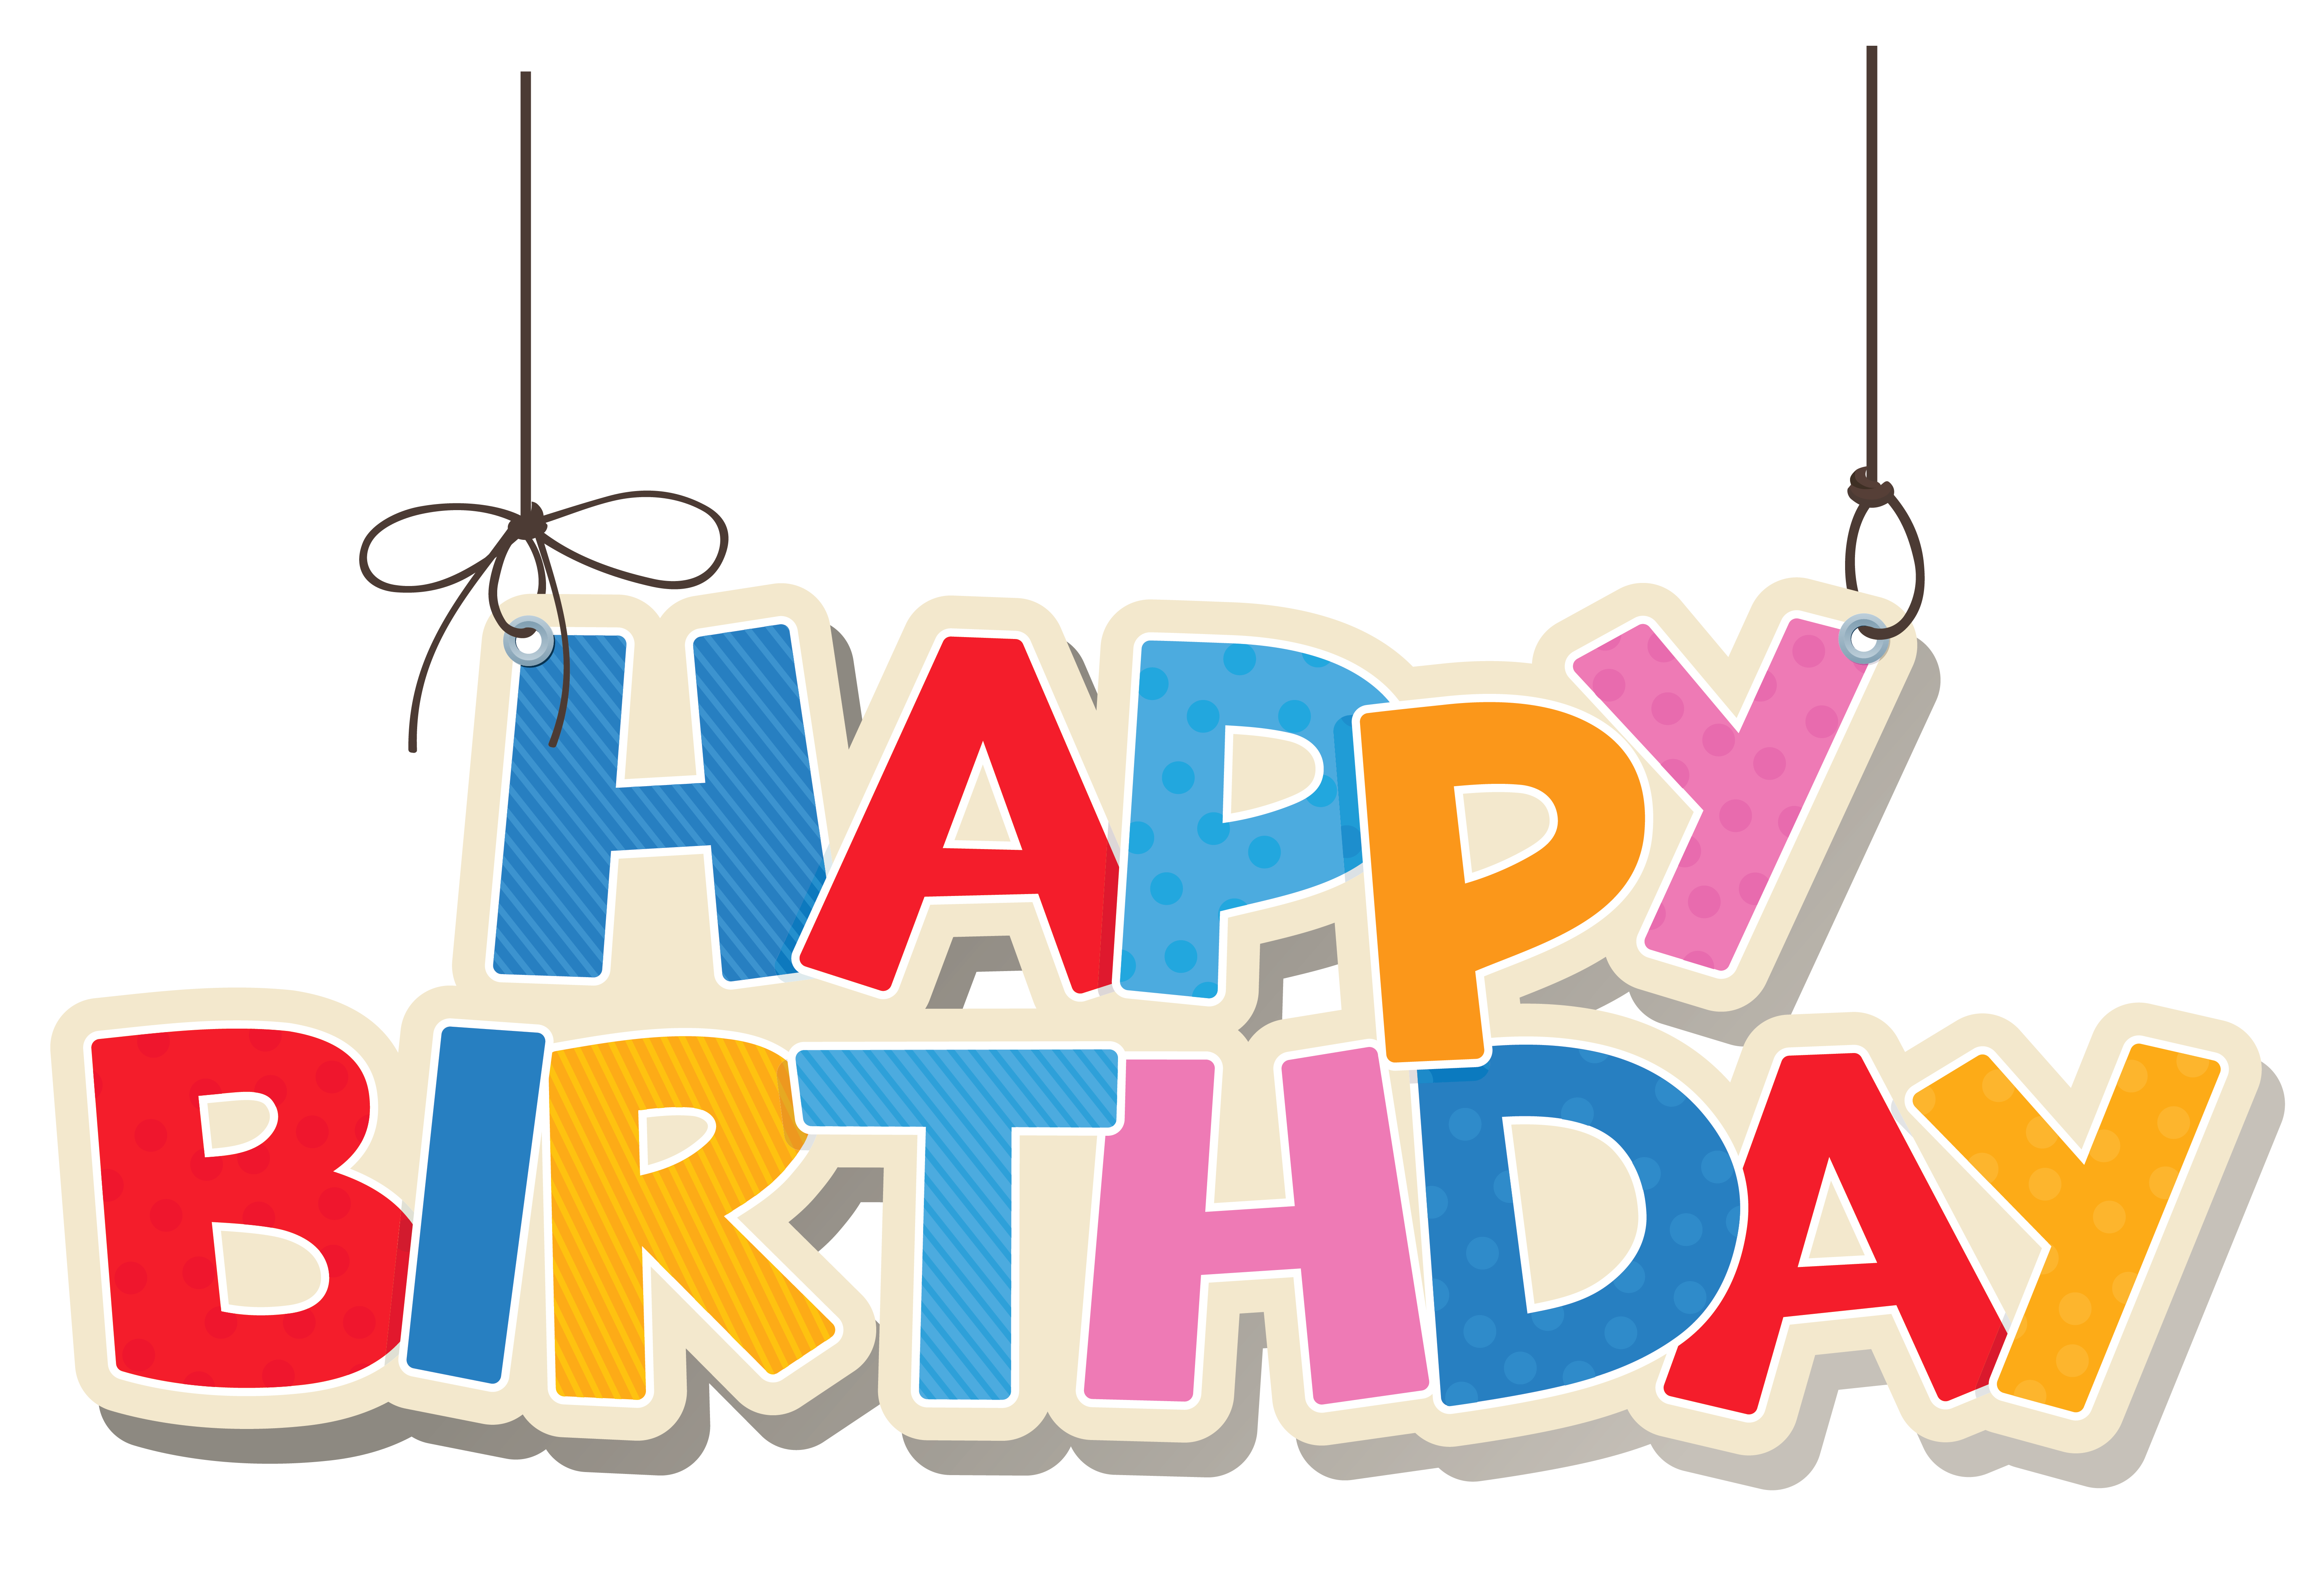 Hedgehog clipart happy birthday. Hanging colorful png picture